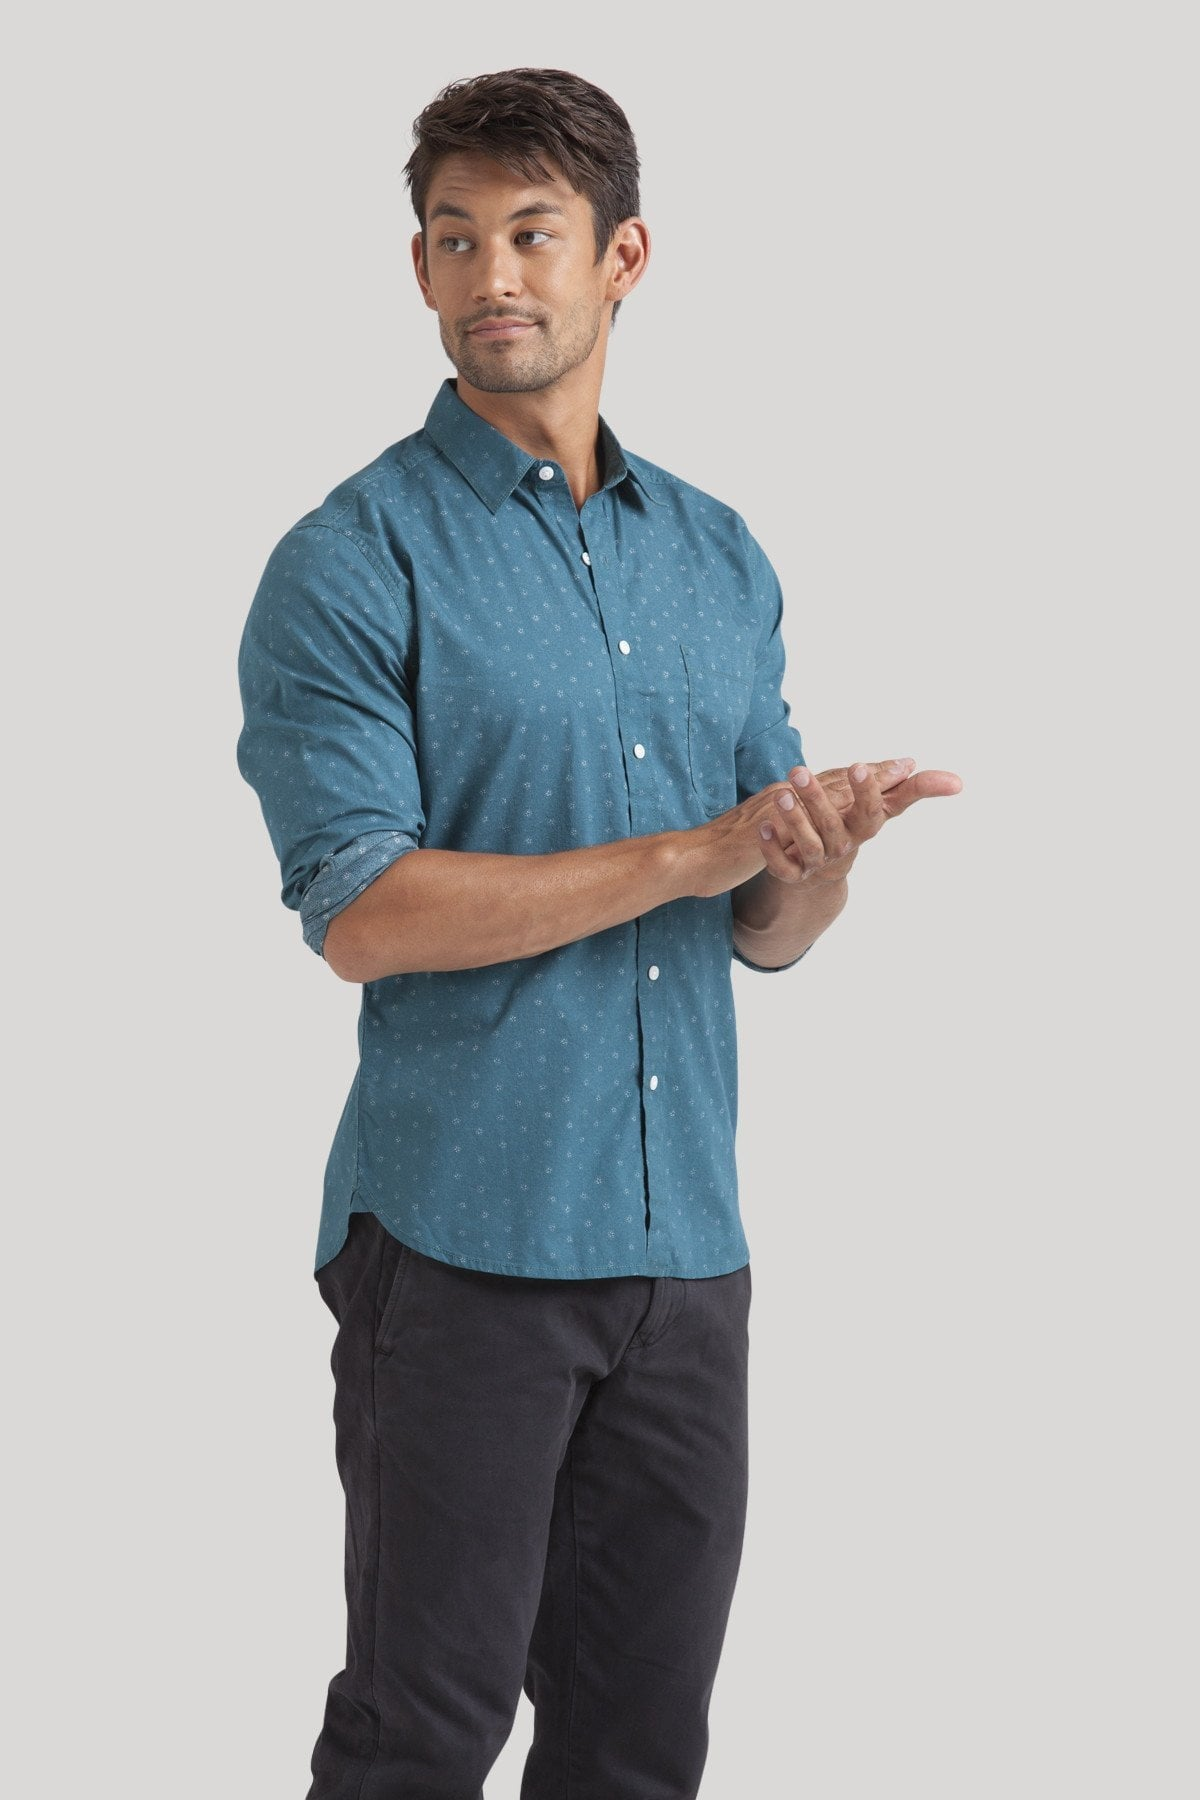 Kyoto Shirt - Teal